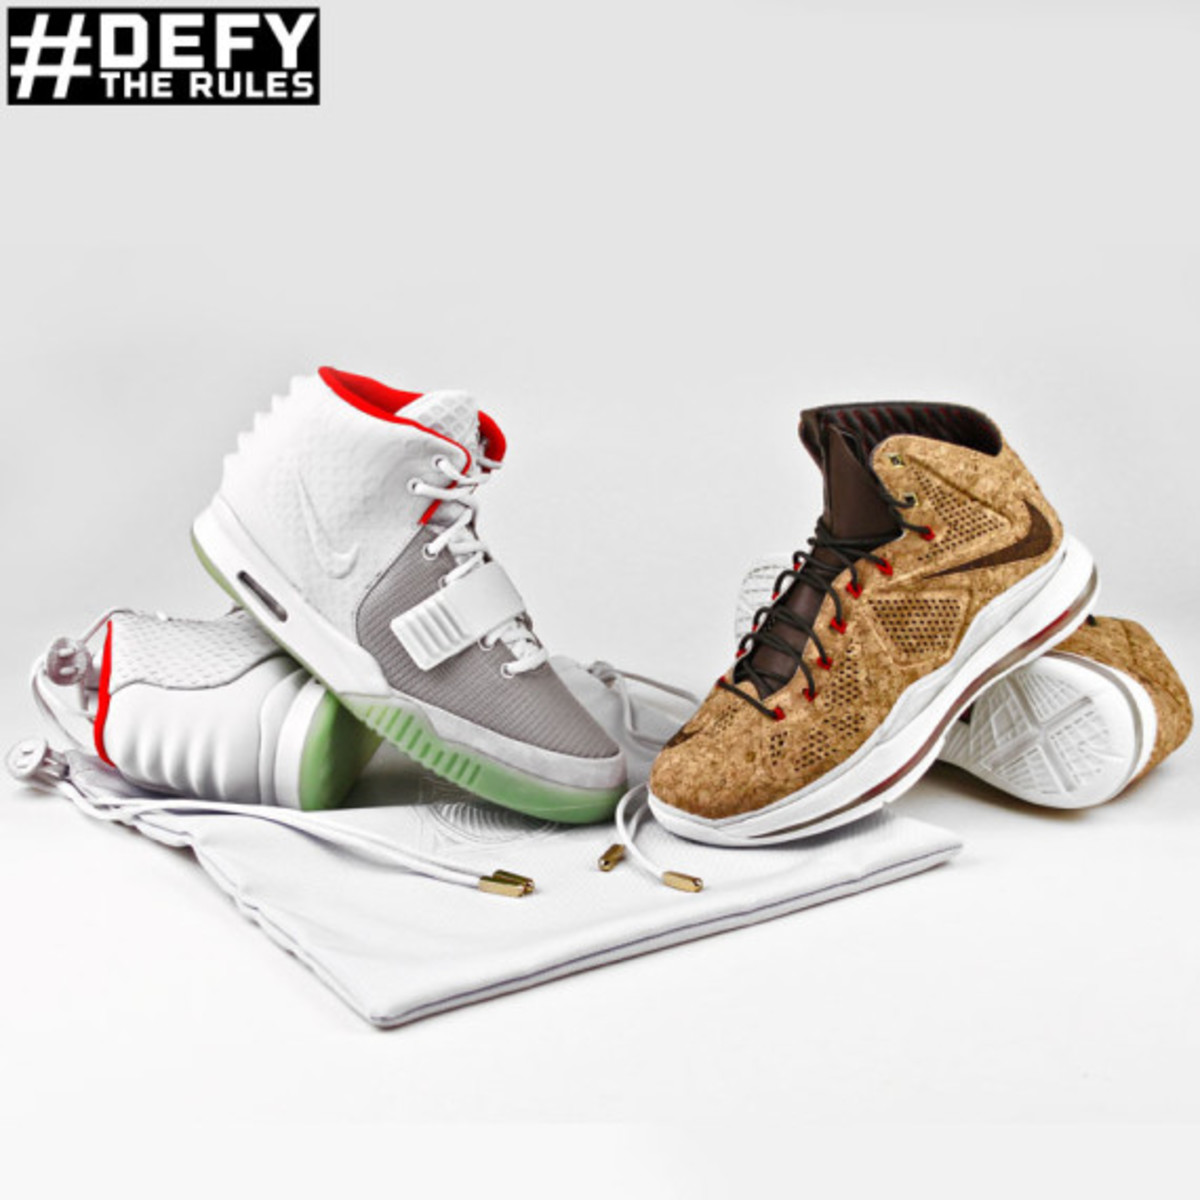 villa-2013-refresh-hunt-featuring-corks-and-yeezys-06